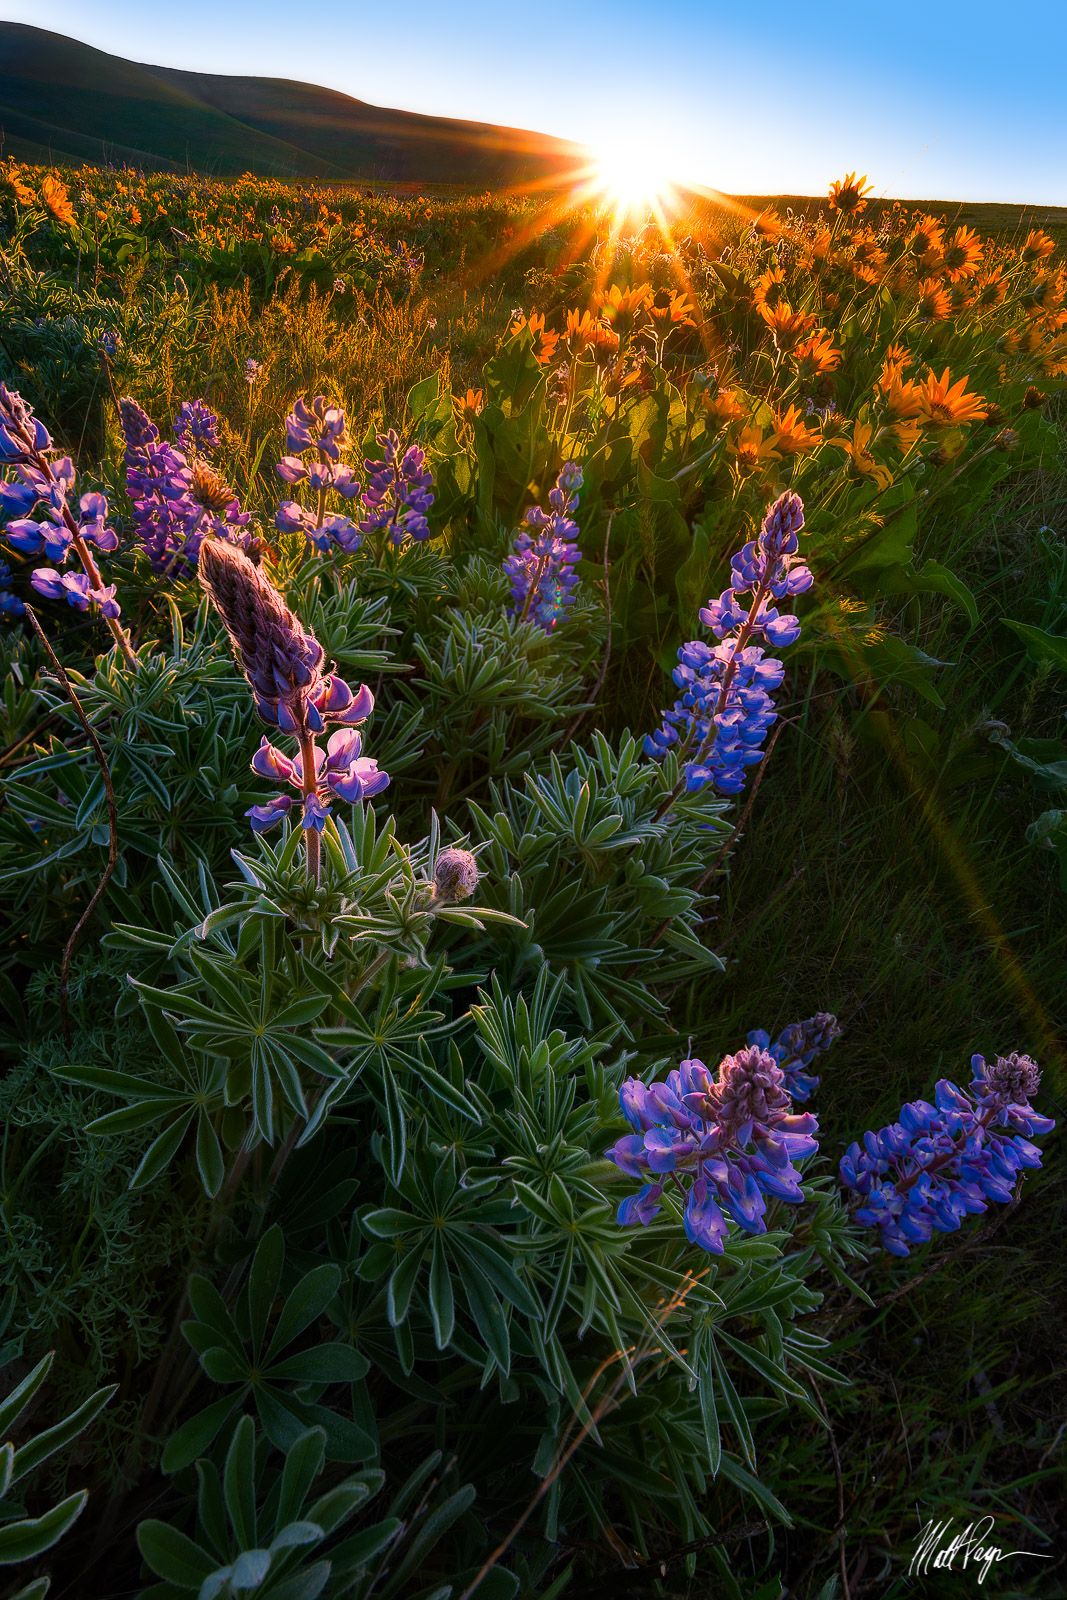 In 2014, I went out to the wildflower haven Dalles Mountain Ranch with my friend Michael Bollino to photograph sunrise -...